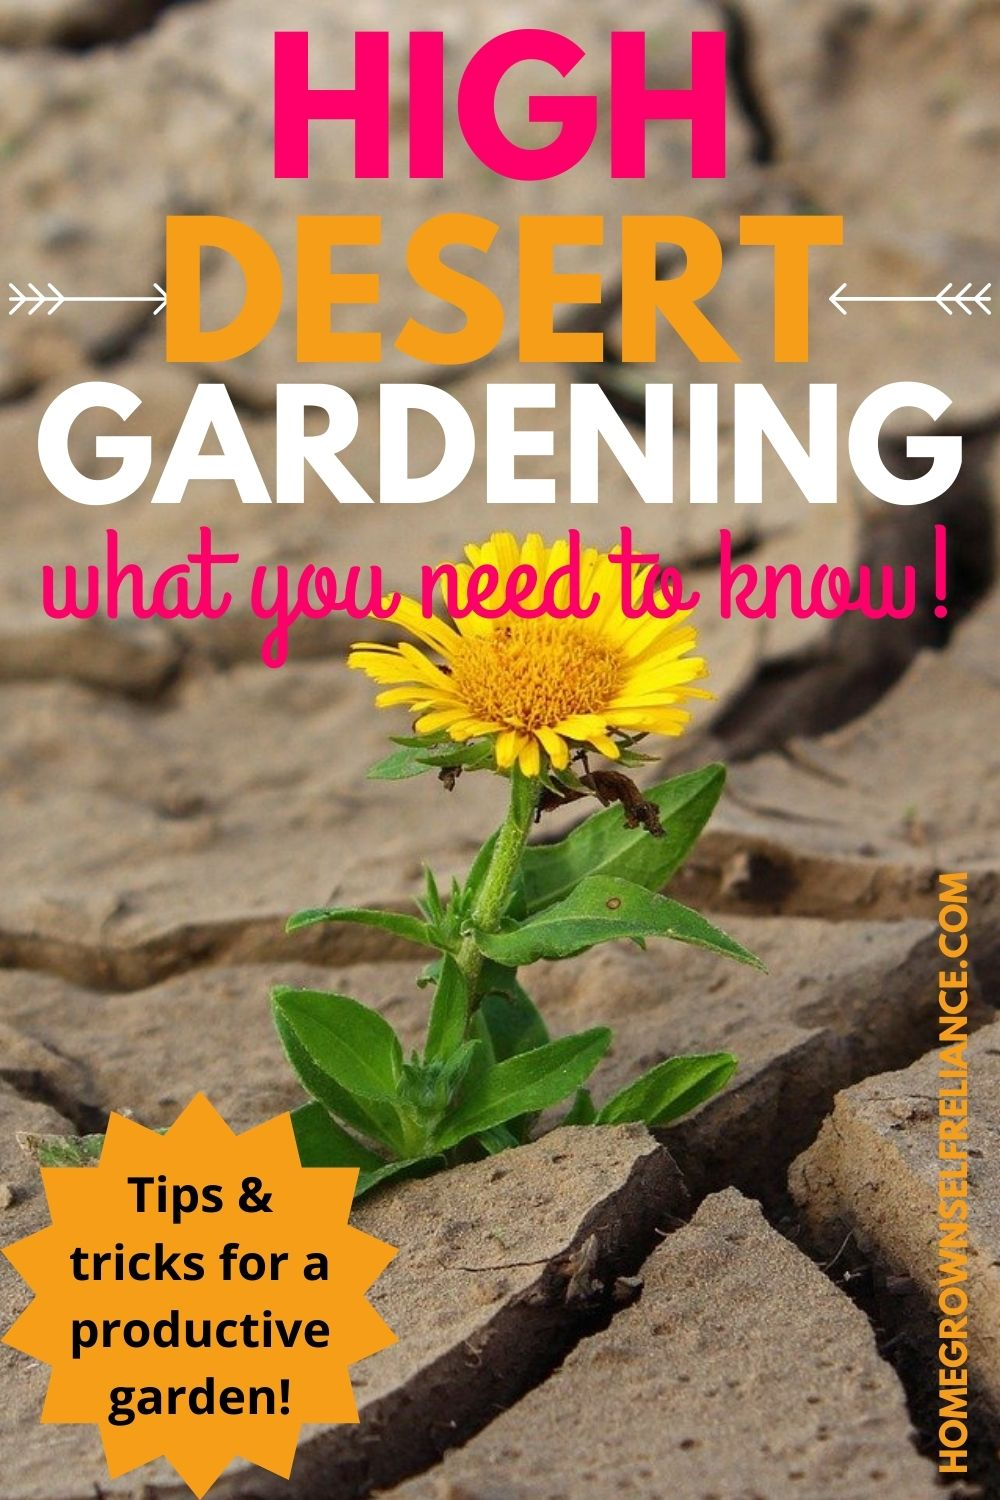 high desert gardening, High Desert Gardening: What You Need To Know